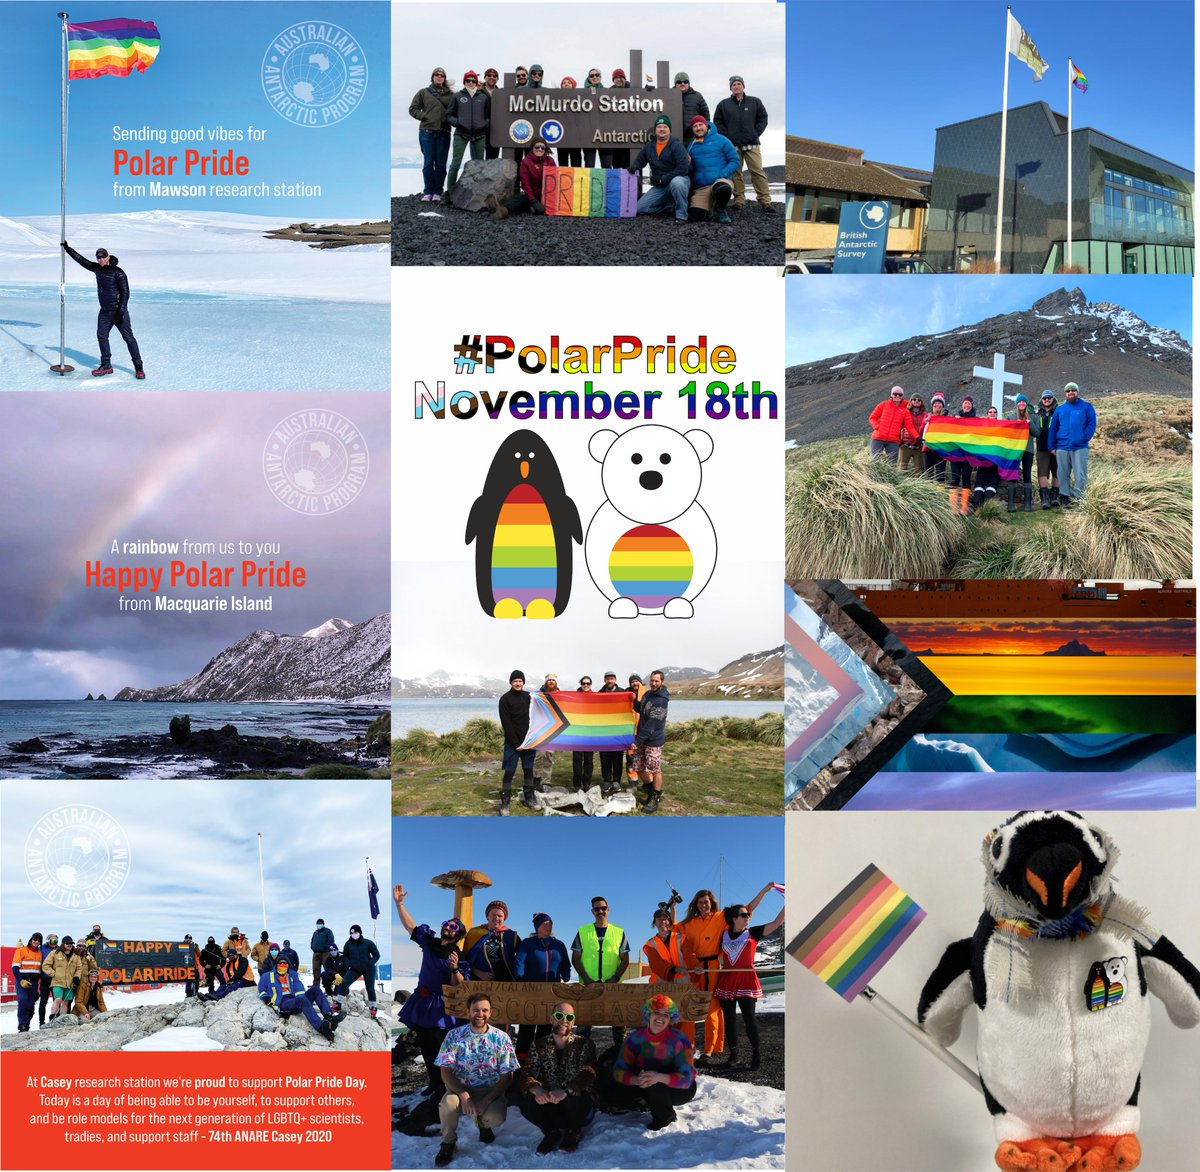 Celebrating #PolarPride Day! The sea women @sednaepic are proud to support and advance diversity in science being conducted at the poles #LGBTQSTEMDay #PolarPride #inclusion #diversity #equity #Arctic #Antarctica @PridePolar @PrideinSTEM https://t.co/B3NA18xiAW